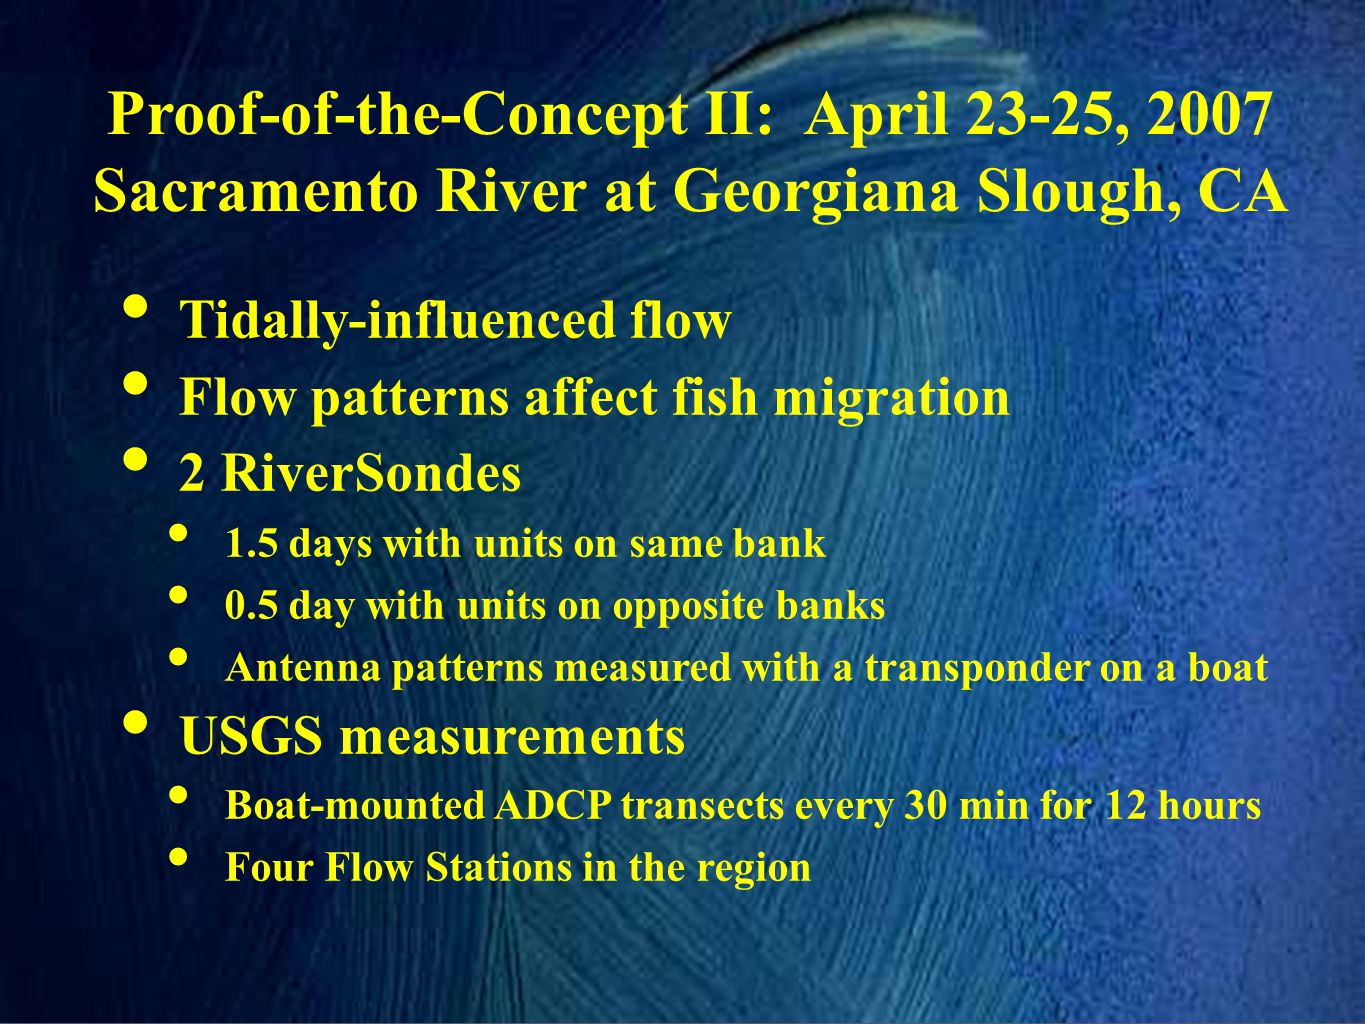 Proof-of-the-Concept II: April 23-25, 2007 Sacramento River at Georgiana Slough, CA